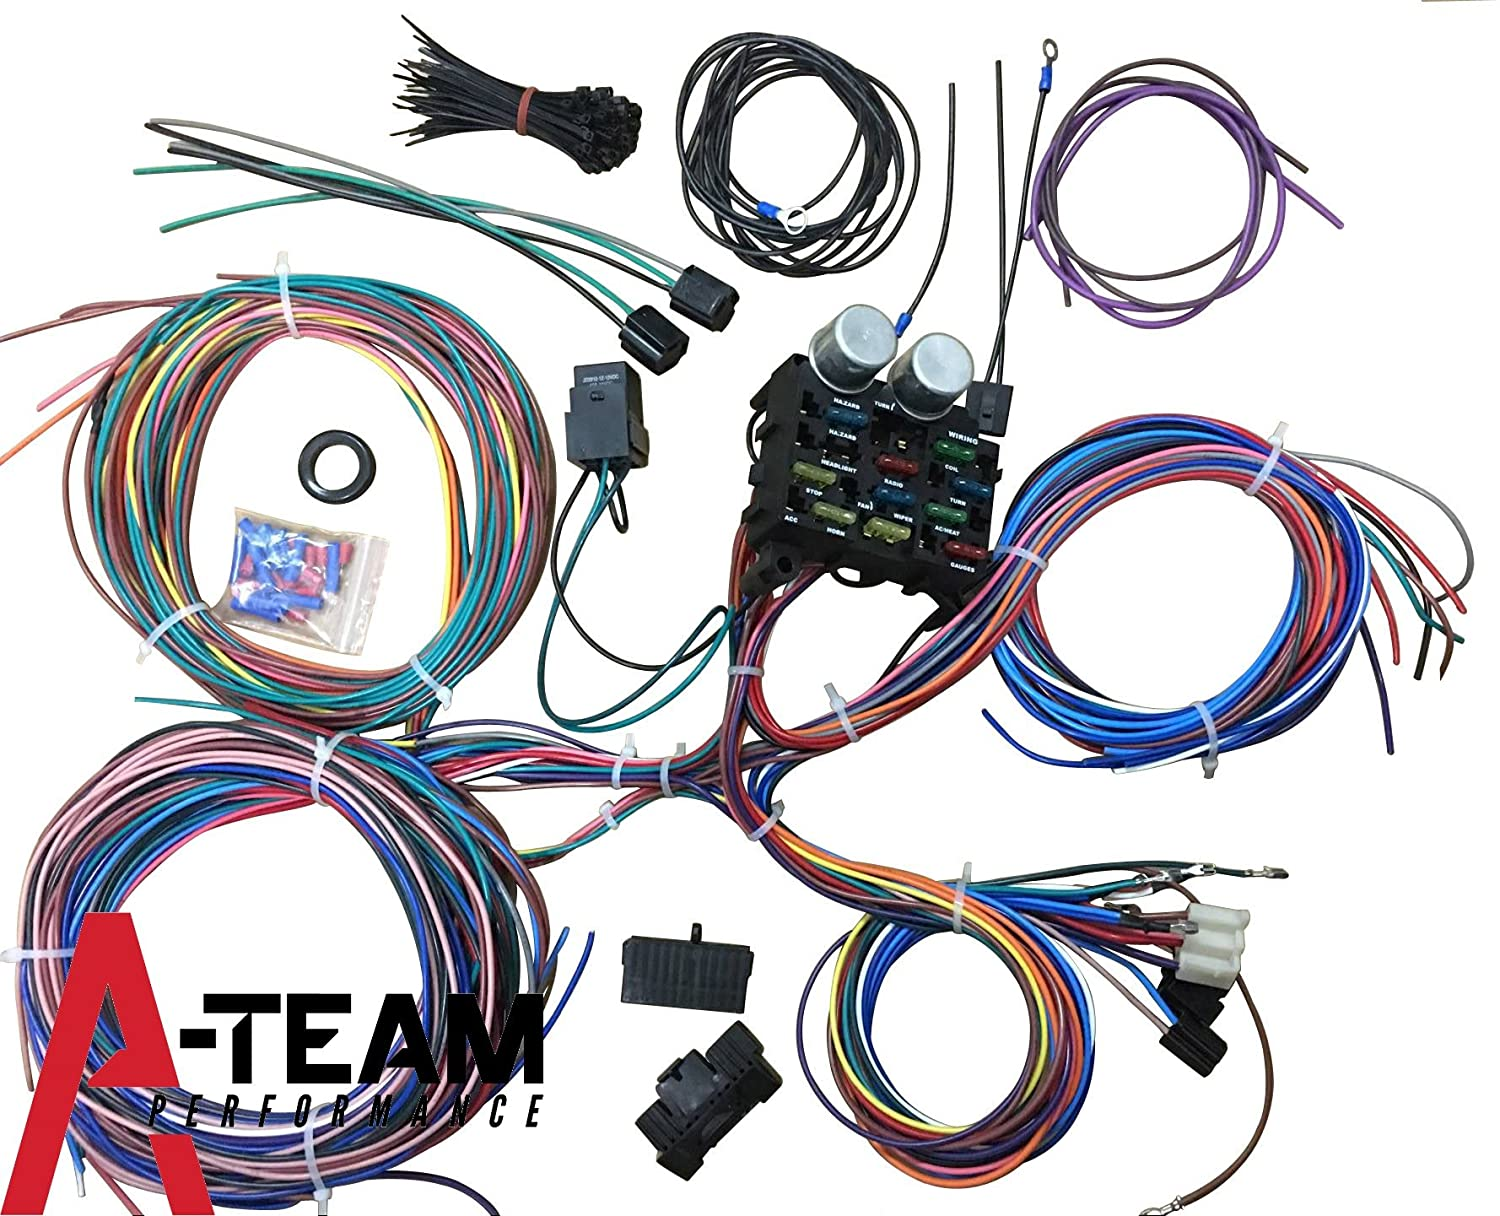 81nvGz8yhML._SL1500_ amazon com ez wiring mini 20 21 circuit wiring harness automotive ez wiring 21 circuit harness at mifinder.co